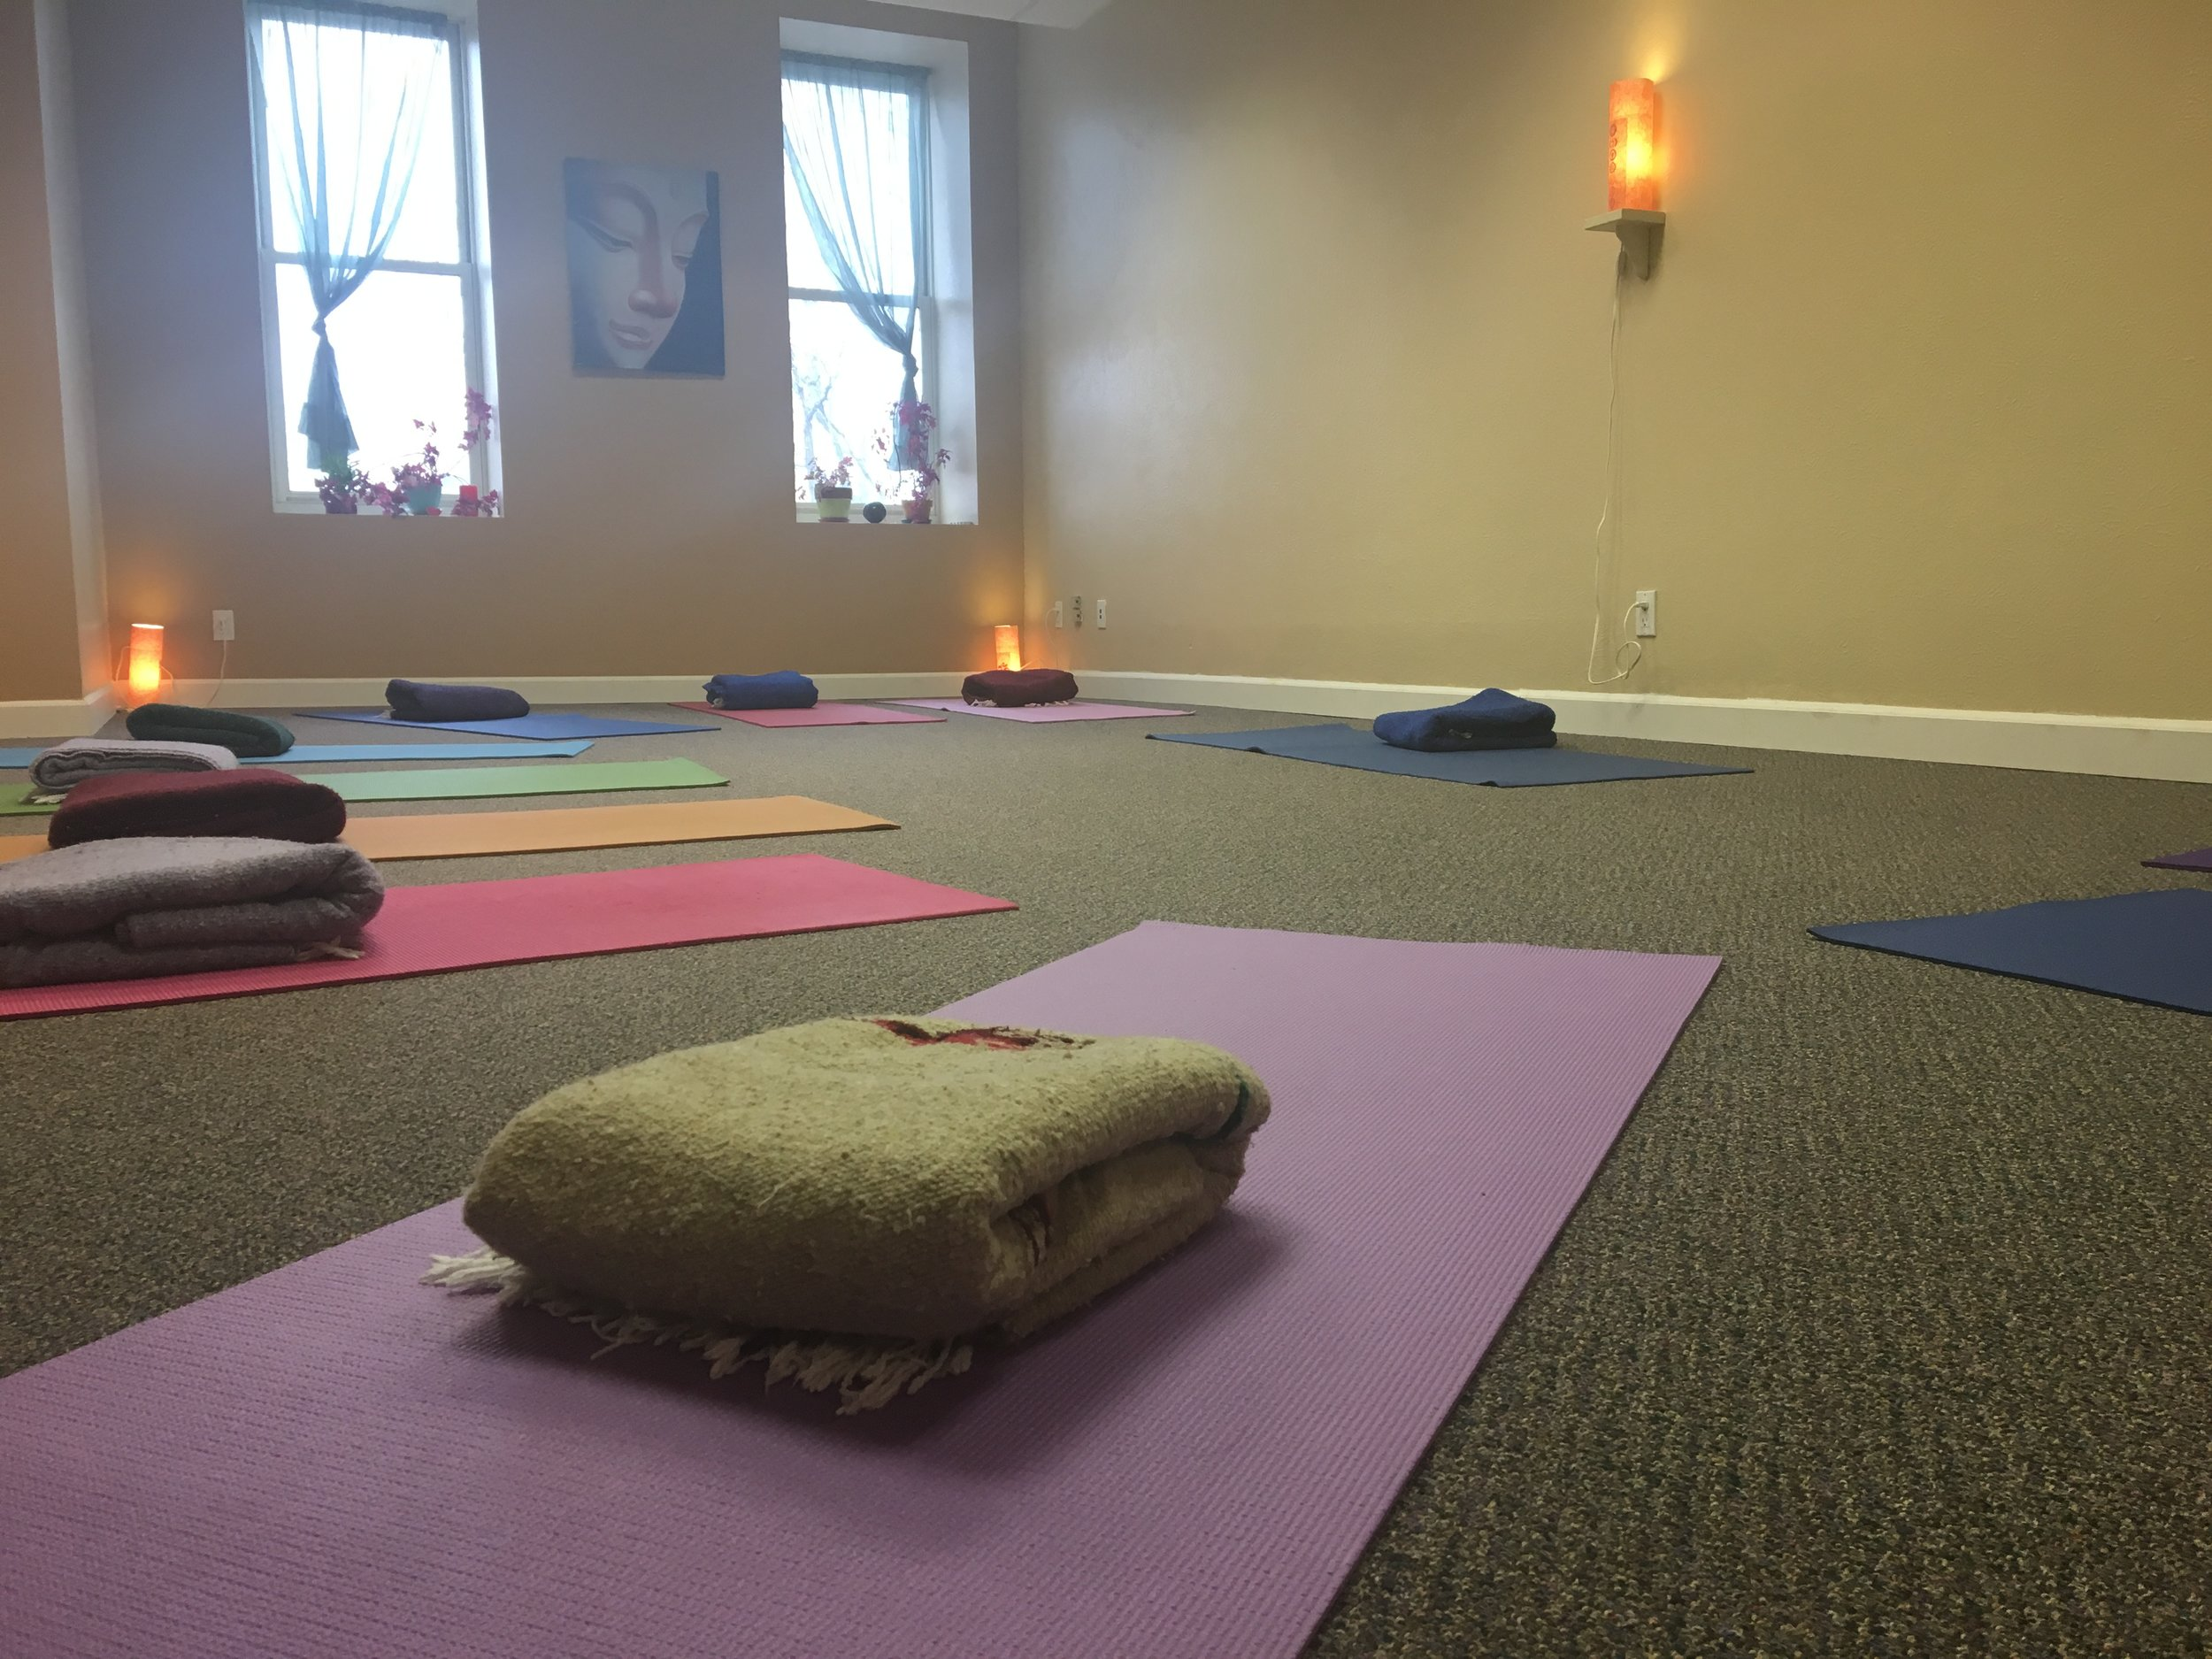 Your body, mind, and heart are always with you. - If the tools you learn in a Mooka Classroom help you connect in a yoga class, that's beautiful. If you find this connection swimming, running, cooking, gardening, spending time with loved ones, or any moment of your day: even more beautiful.